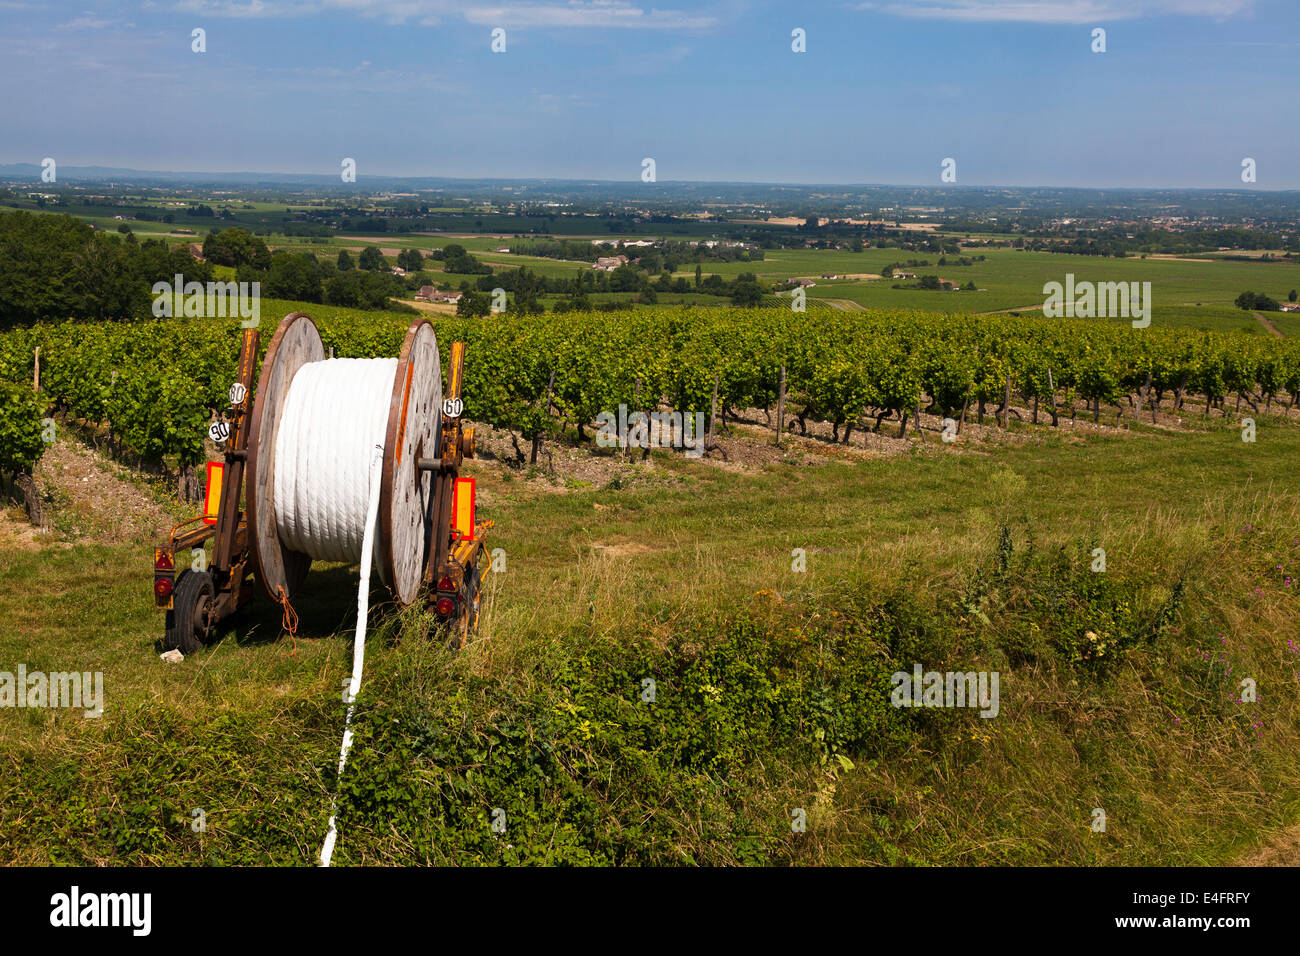 Water irrigation pipe on drum by rows of grape vines. - Stock Image